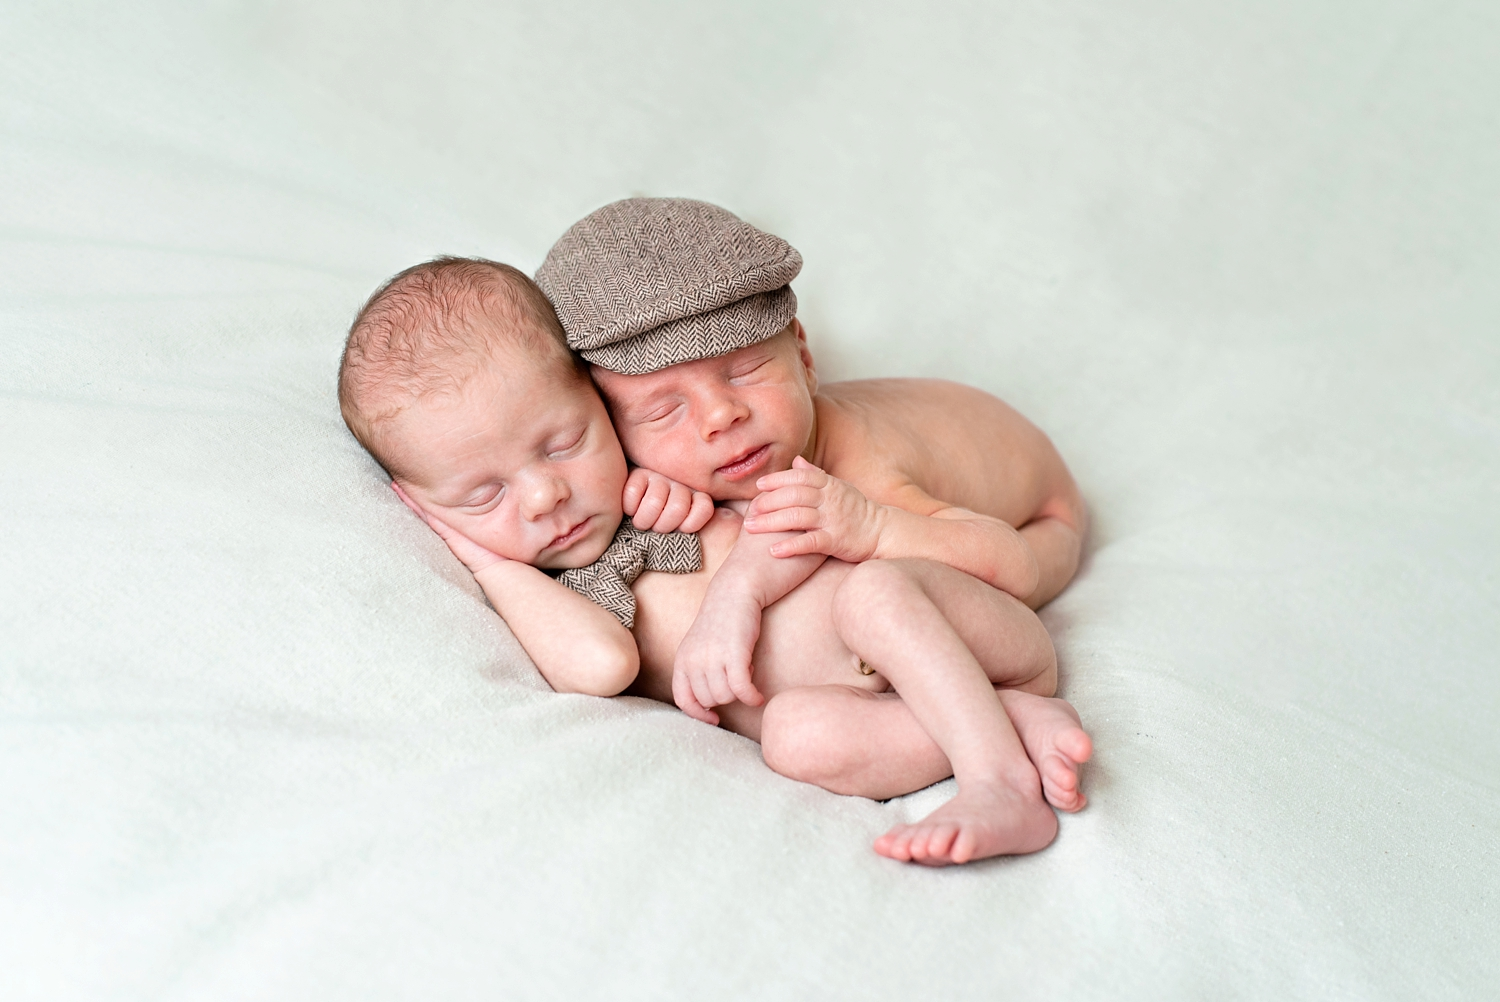 portland-twin-boys-newborn-session-shelley-marie-photo-113_cr.jpg